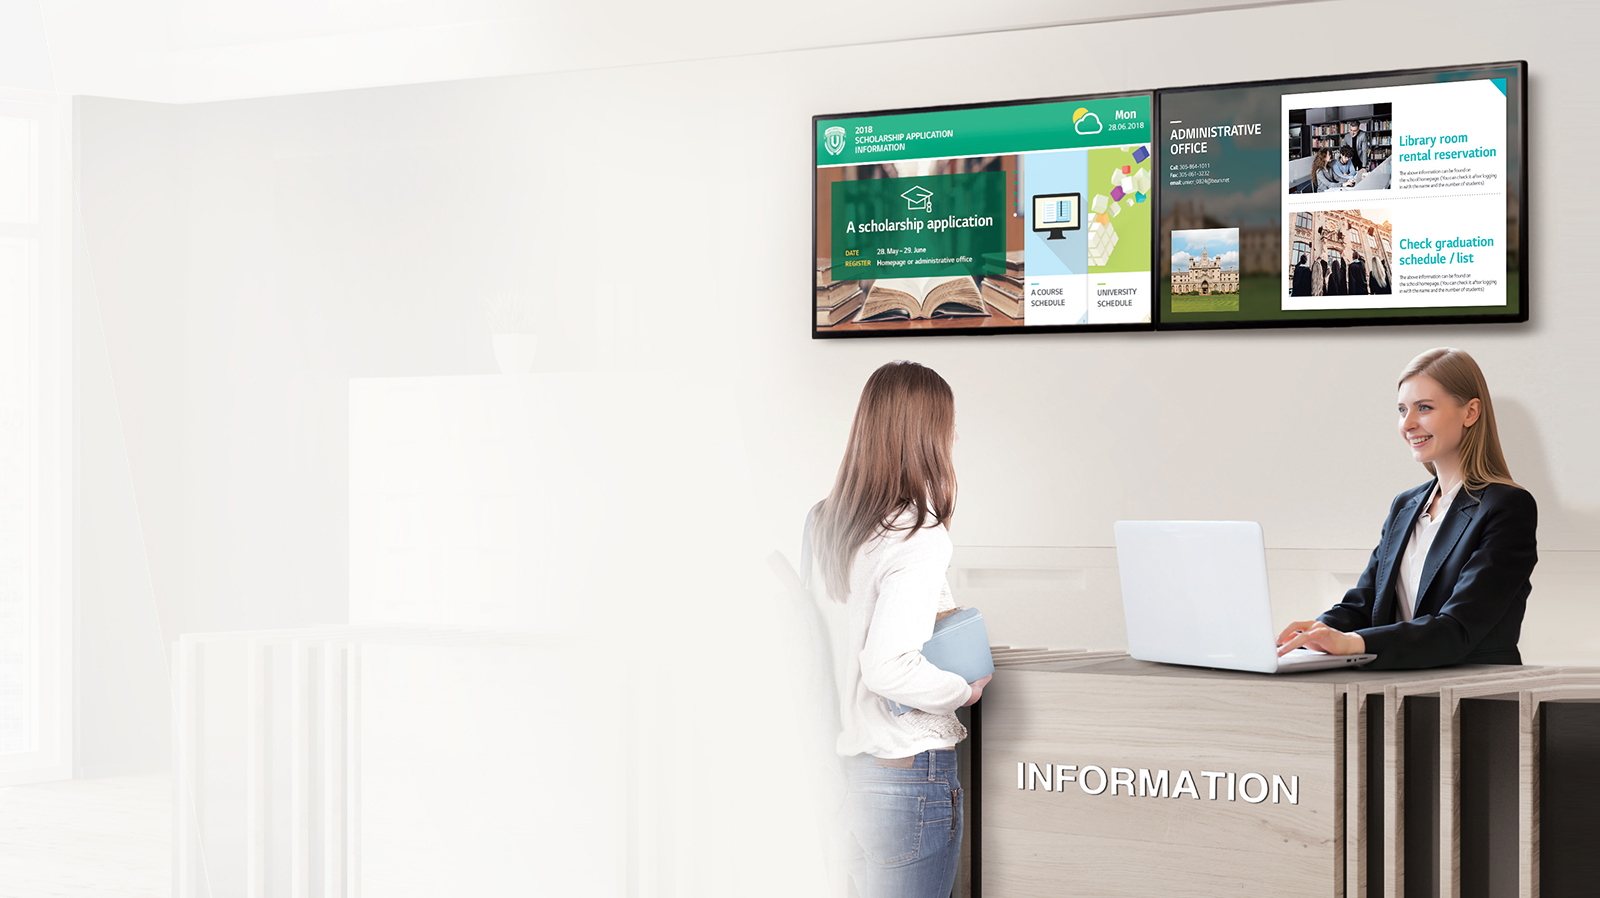 Two LG commercial displays mounted behind an information kiosks that two women are at